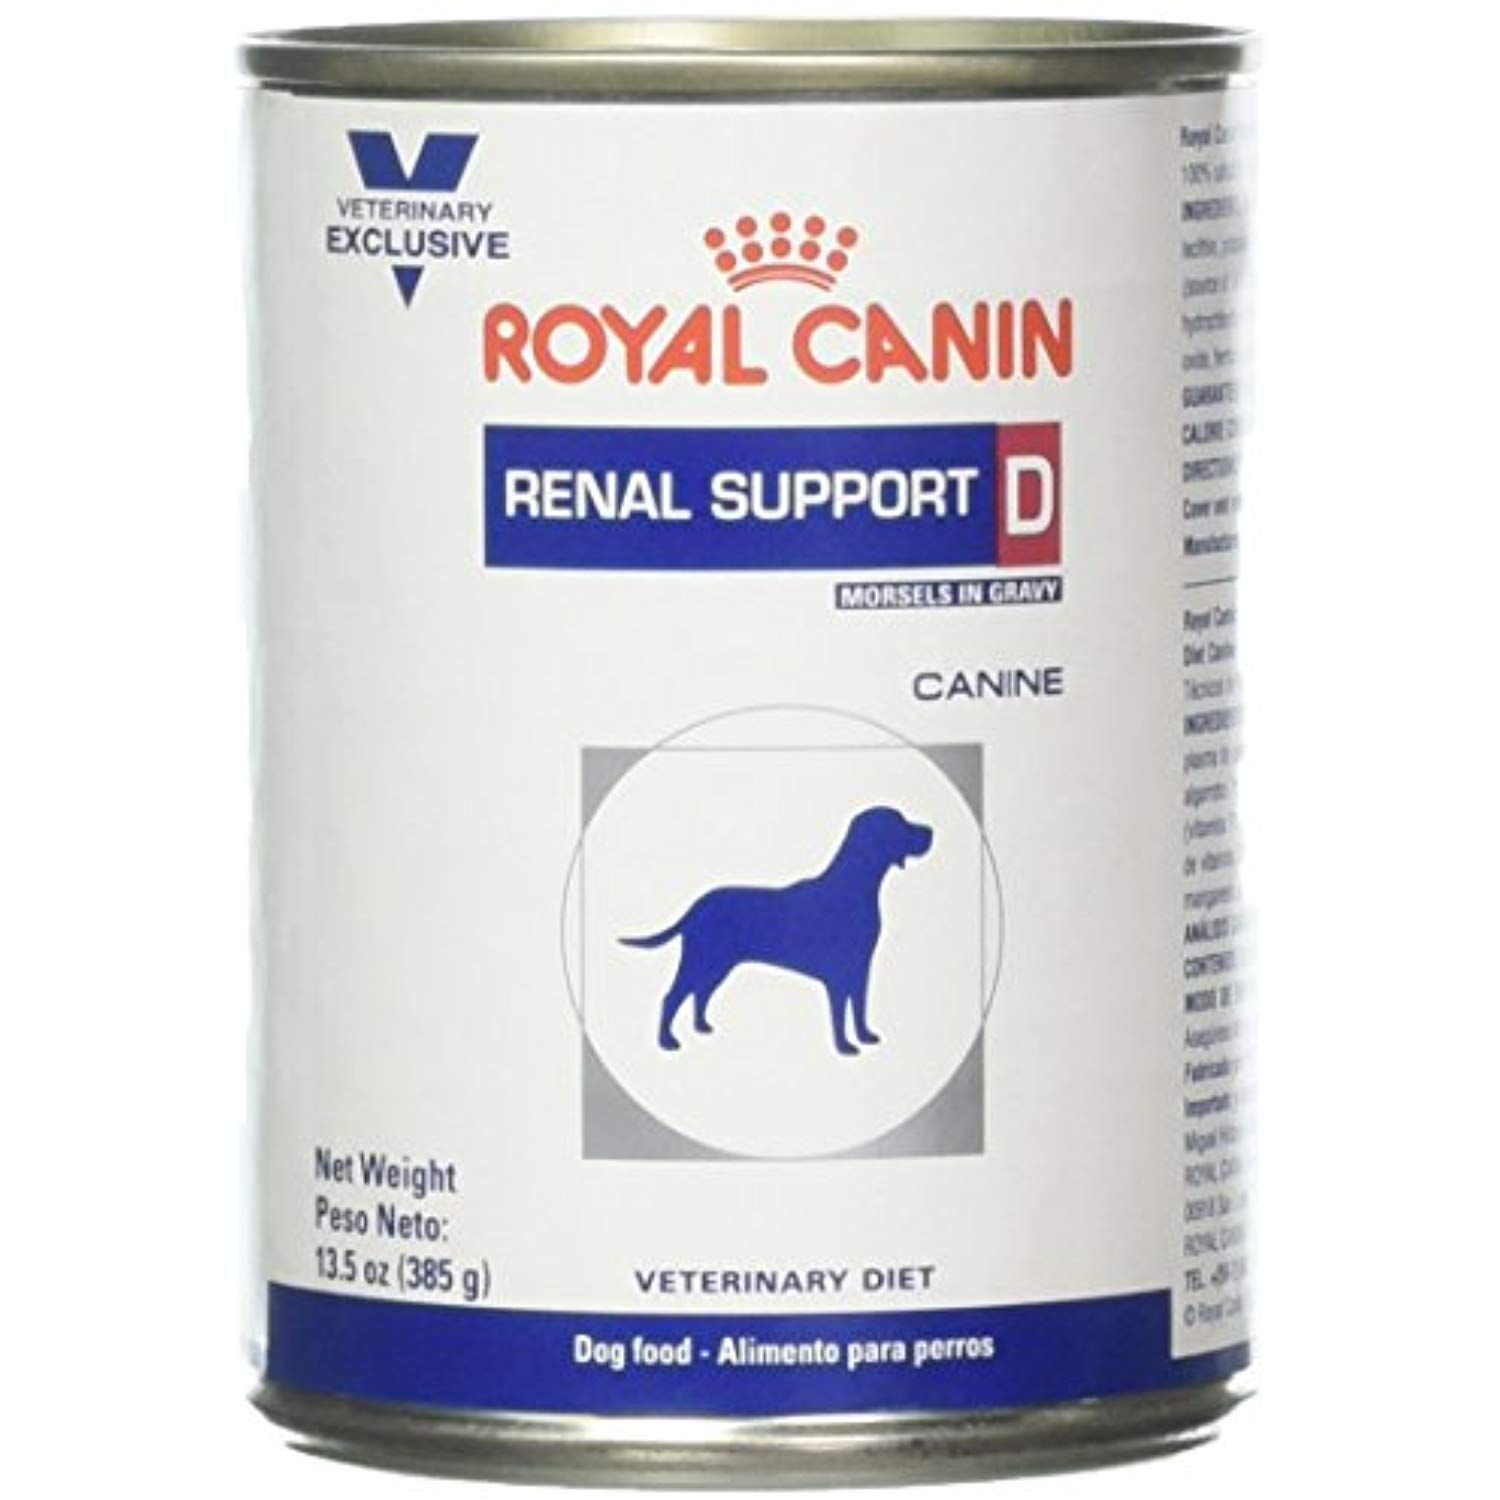 Royal Canin Veterinary Diet Renal Support D Canned Dog Food 24 13 5 Oz Click Image For More Details This Is Canned Dog Food Dog Food Recipes Diet Dog Food